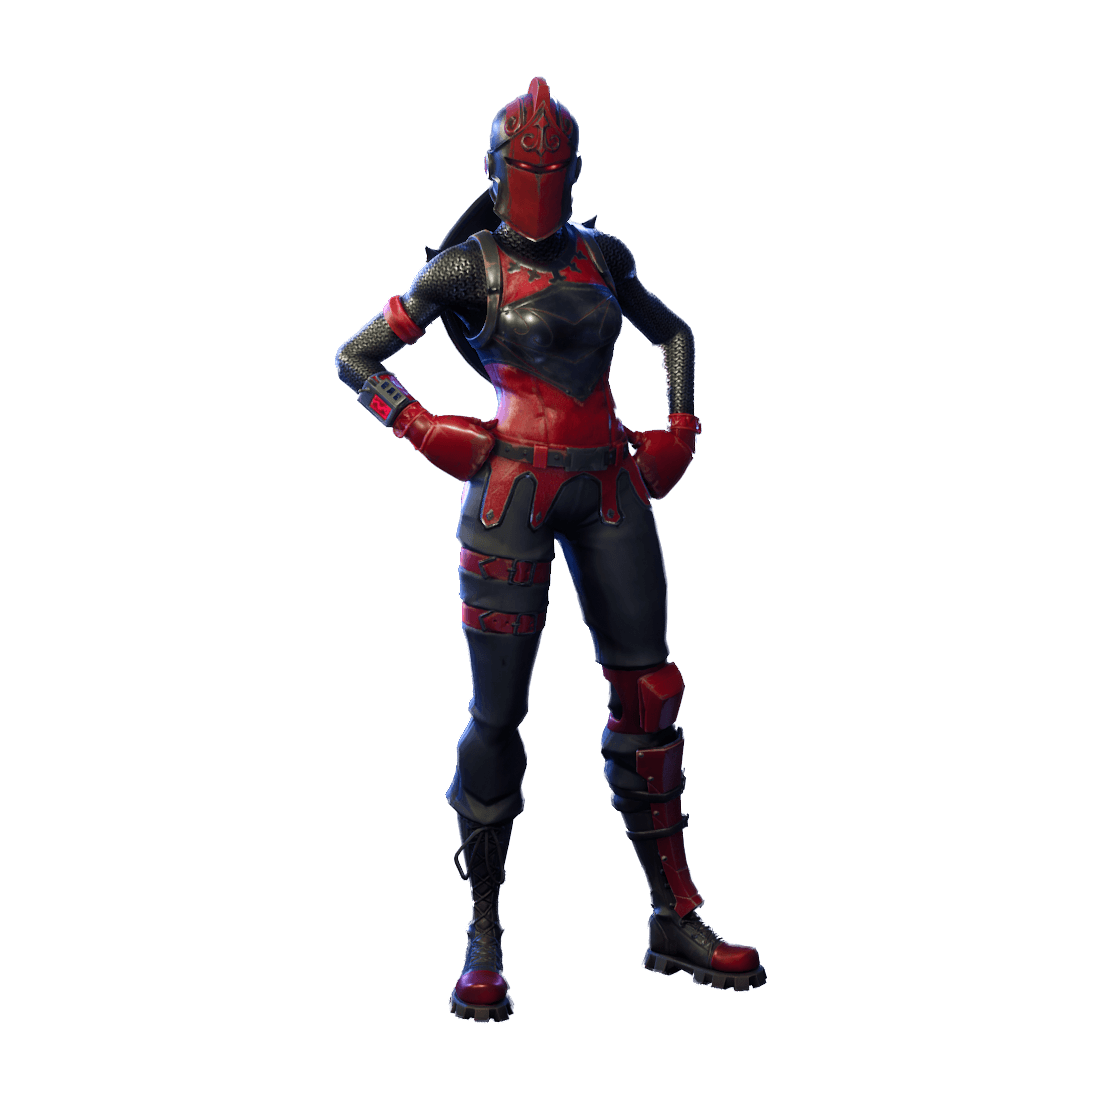 Red Knight Fortnite Desktop Wallpapers - Top Free Red ...